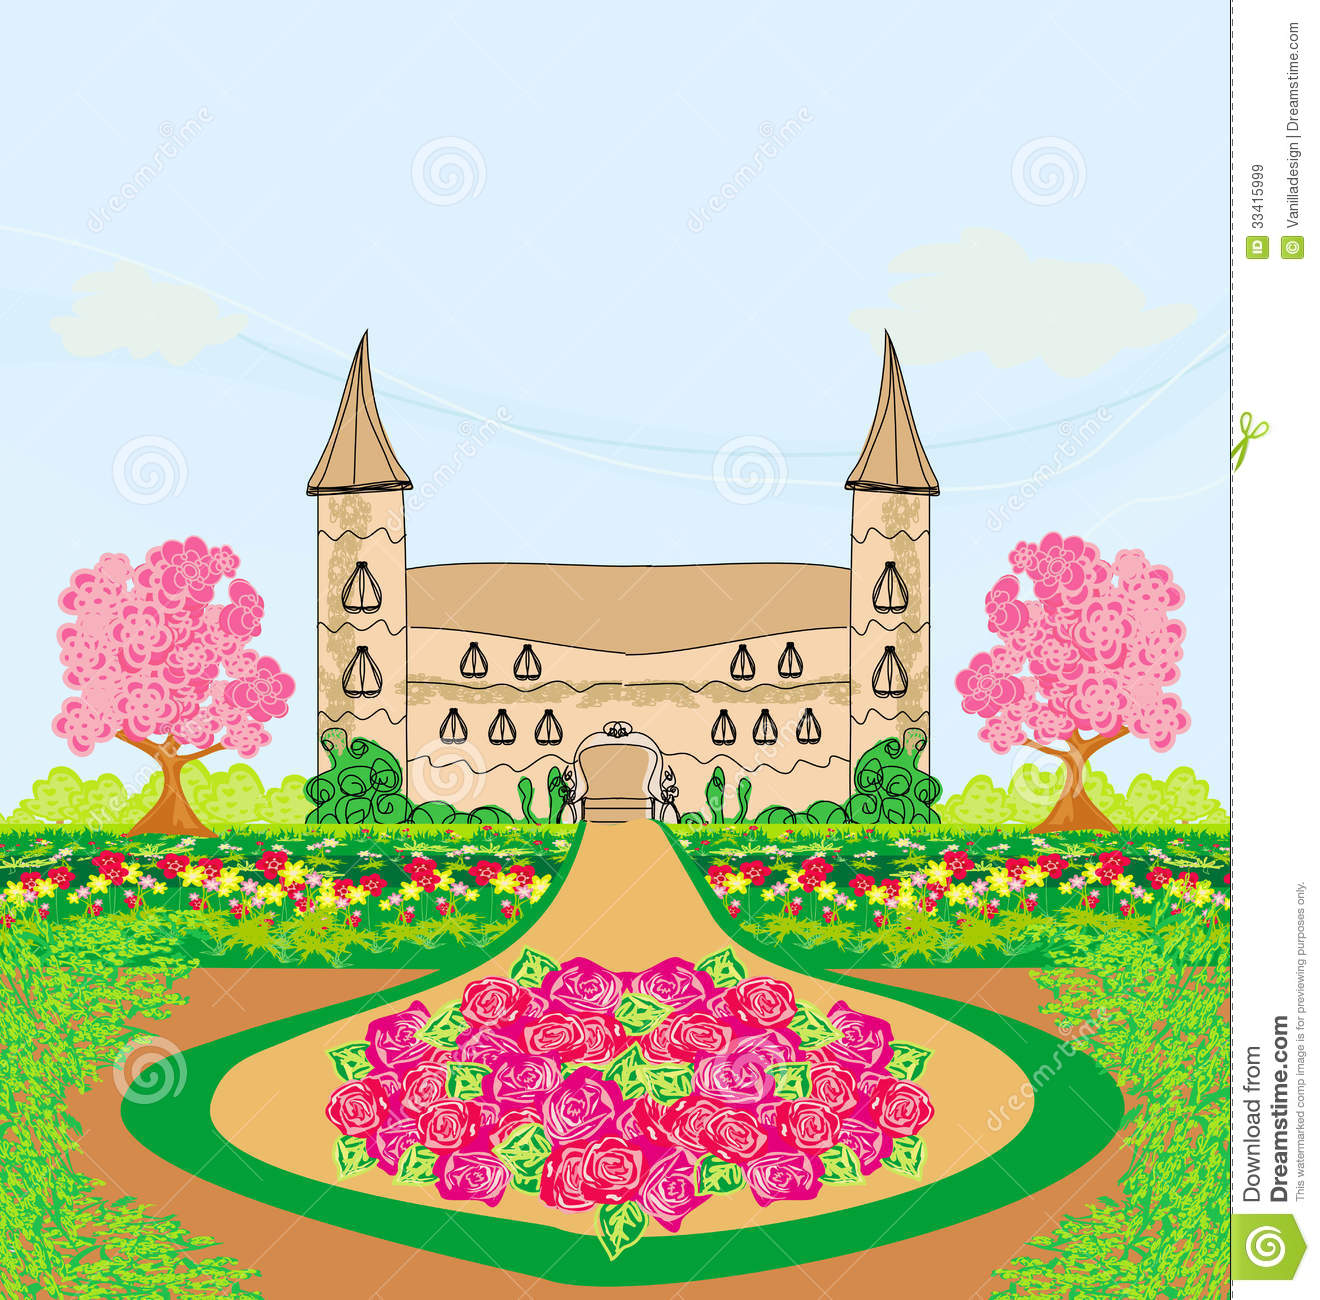 Landscape With A Beautiful Castle And Gardens Royalty Free Stock